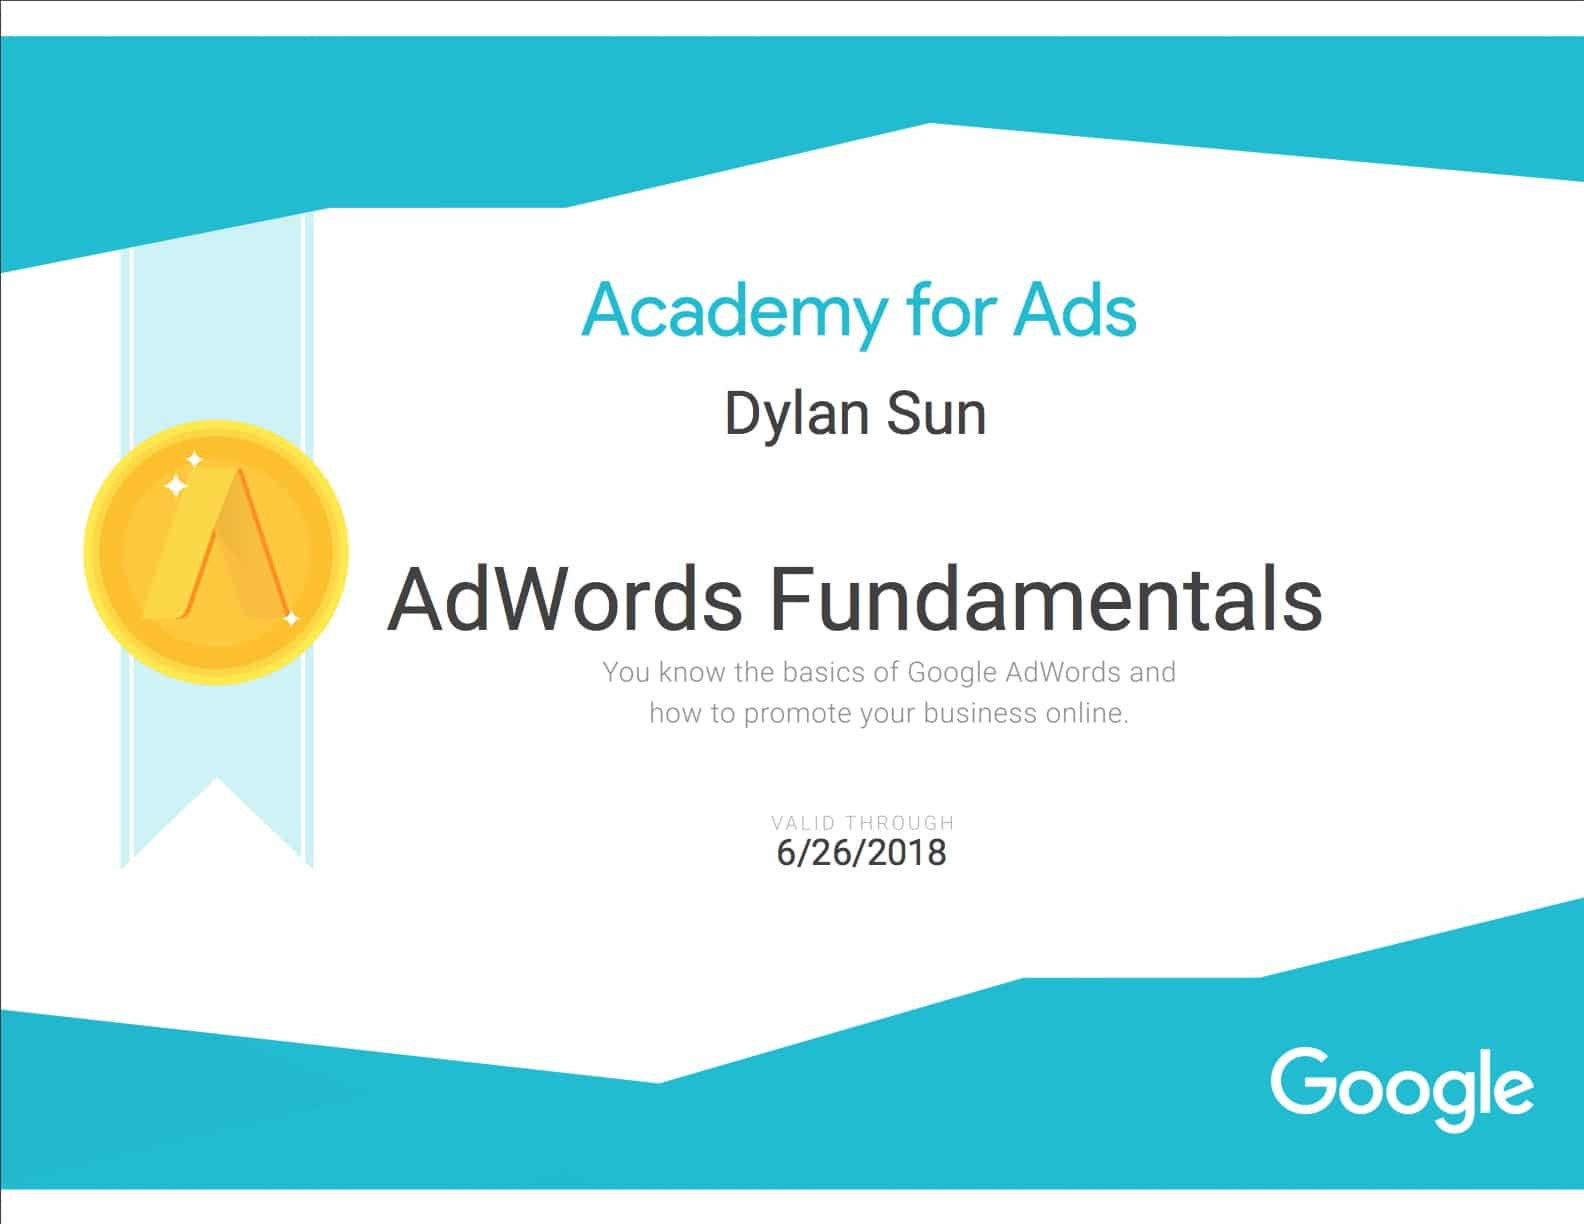 Google adwords fundamentals certification course 2018 equinet adwords fundamentals certificate sample google adwords fundamentals certificate sample xflitez Image collections